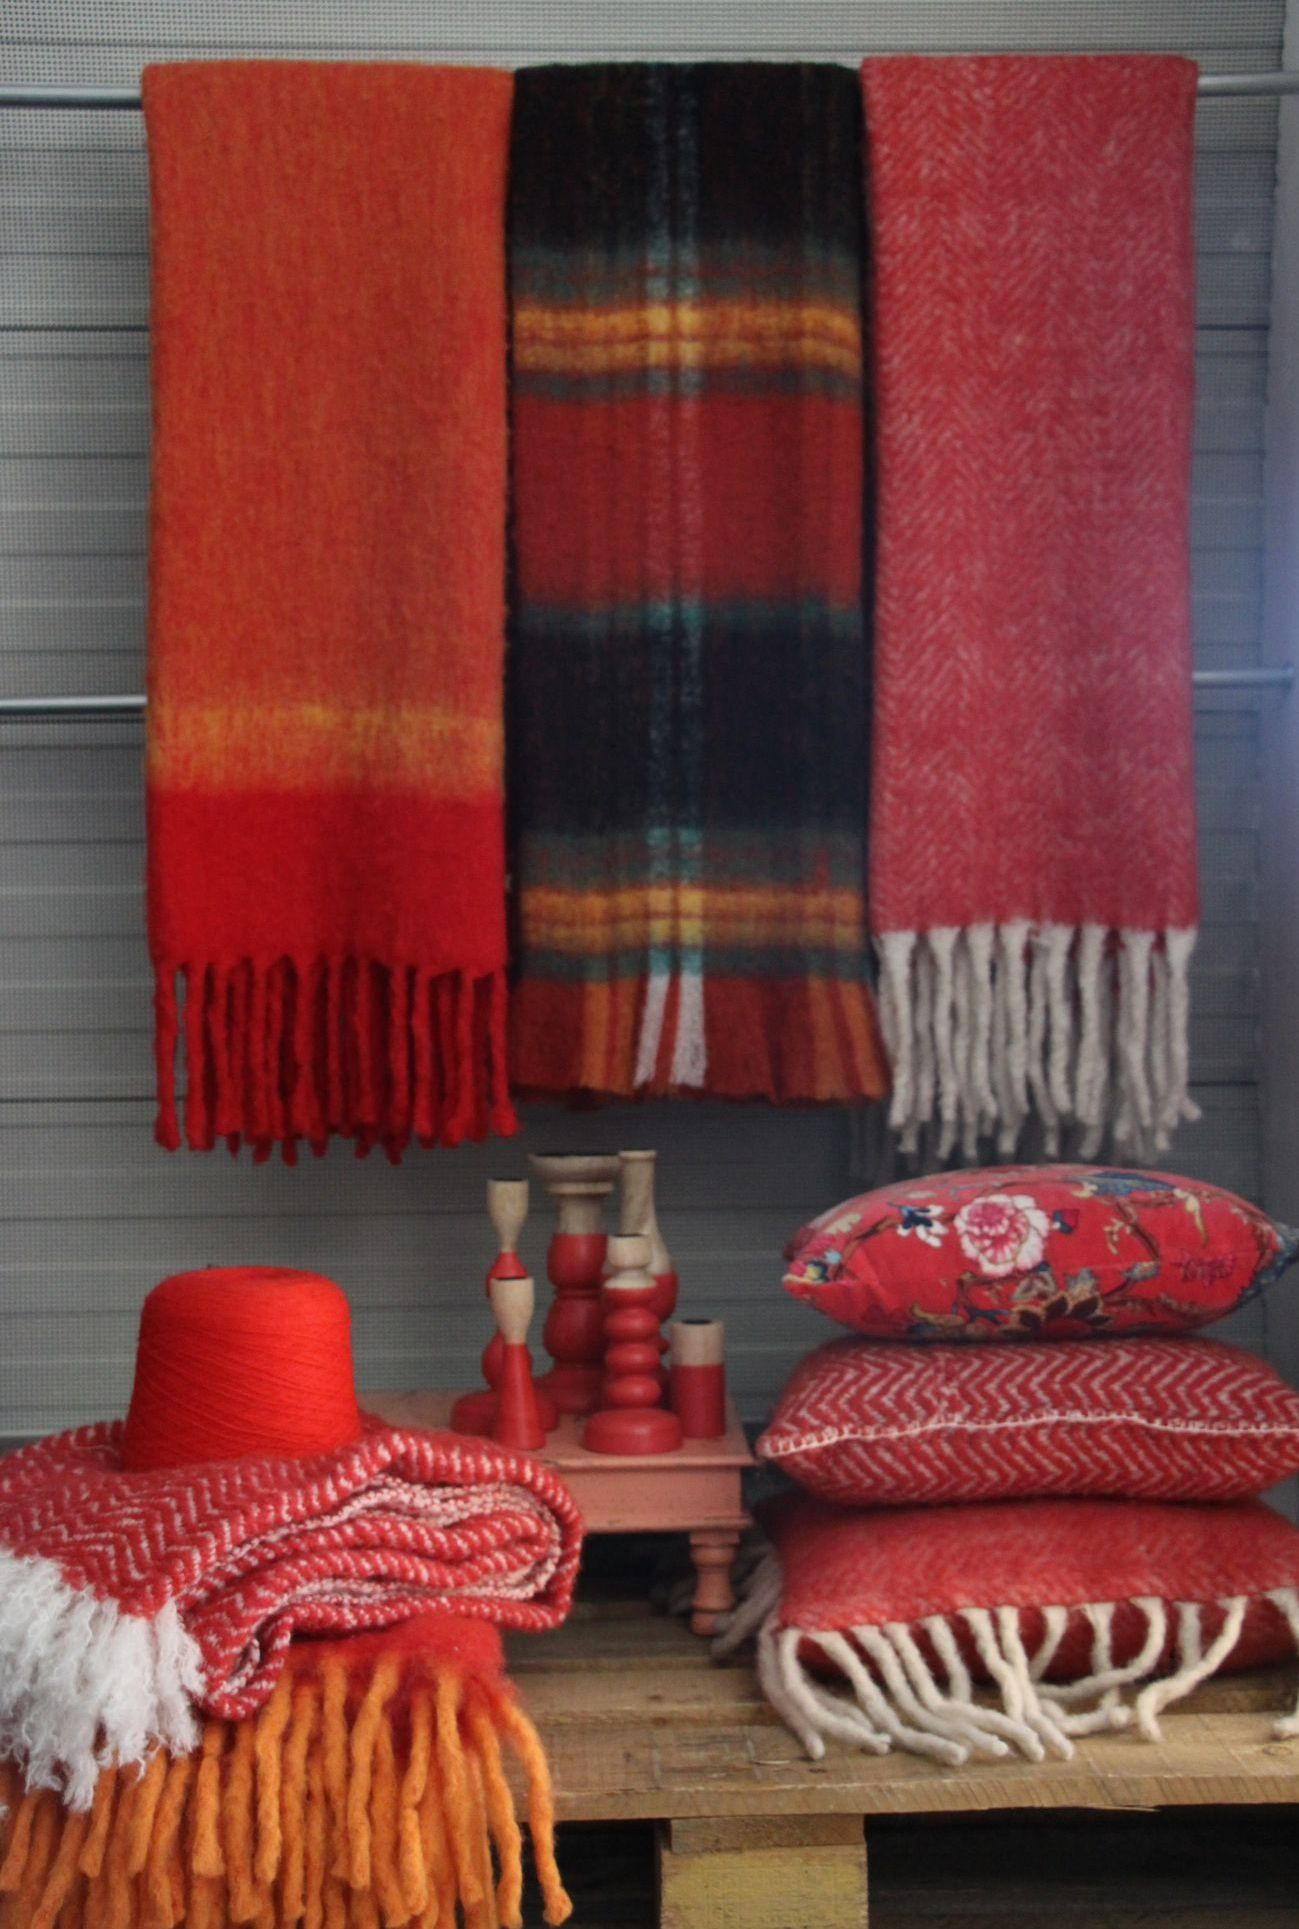 Imbarro colours your winter: warm red!